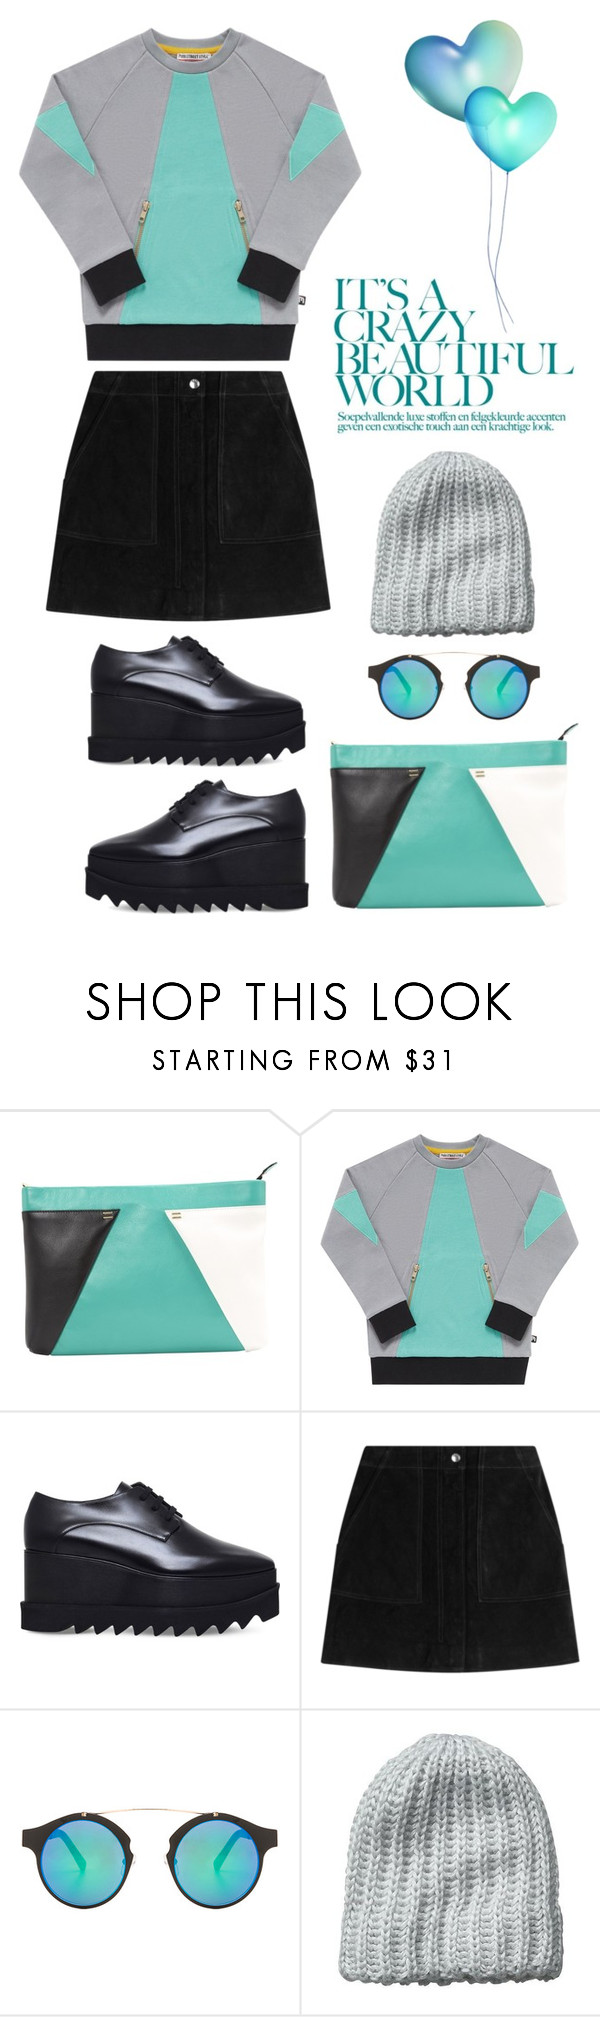 """""""Beautiful World"""" by youaresofashion ❤ liked on Polyvore featuring Roland Mouret, Mini Street Style, STELLA McCARTNEY, rag & bone, Spitfire and Vincent Pradier"""